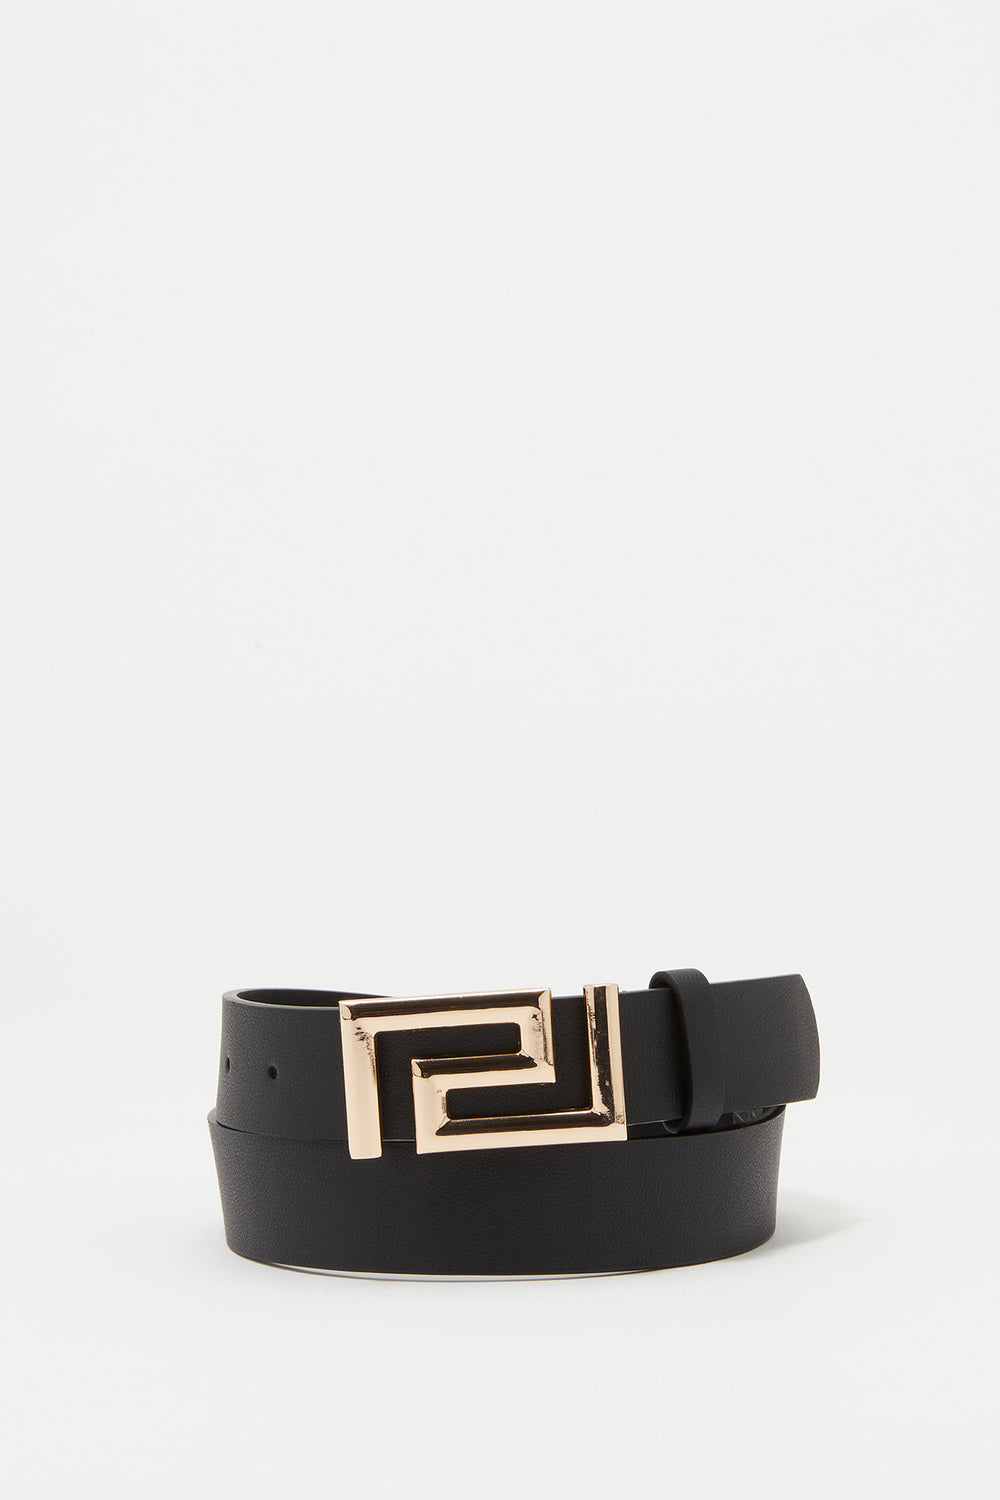 Maze Buckle Belt Black